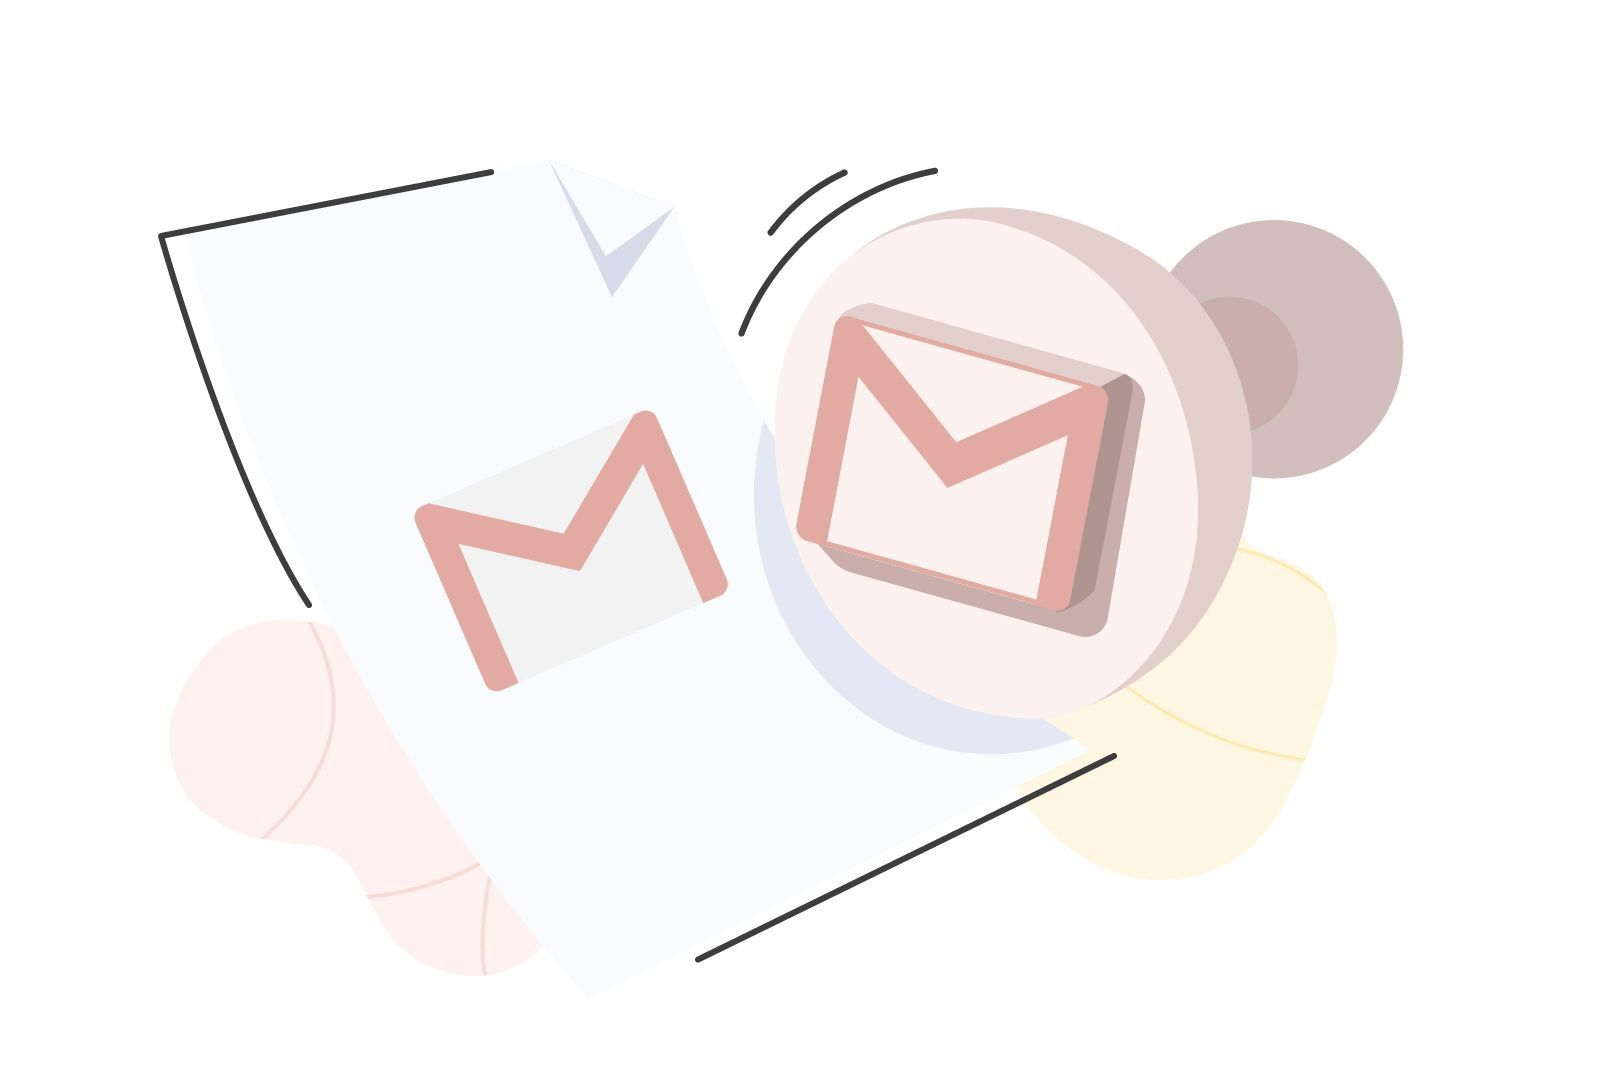 005 Sensational Free Email Template For Gmail High Resolution  SignatureFull